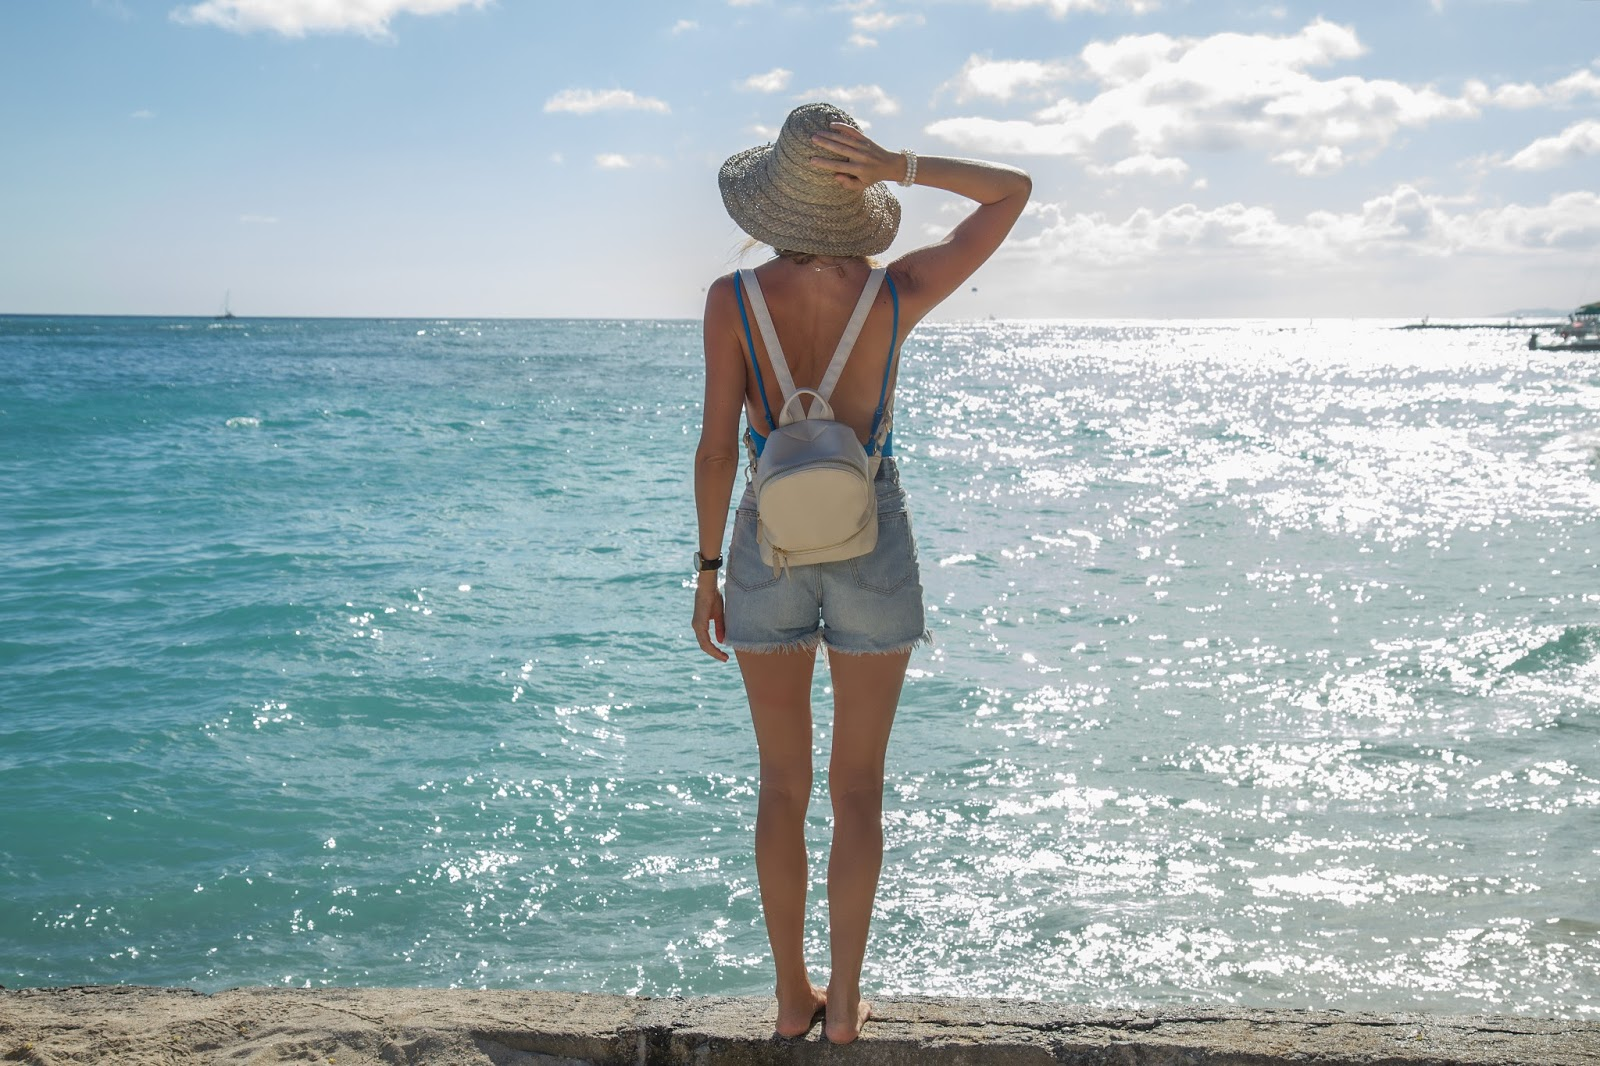 Fashion and travel blogger, Alison Hutchinson, is wearing a Solid and Striped swimsuit, Ksubi shorts, Saint Laurent Sunglasses and a wicker hat from Bali